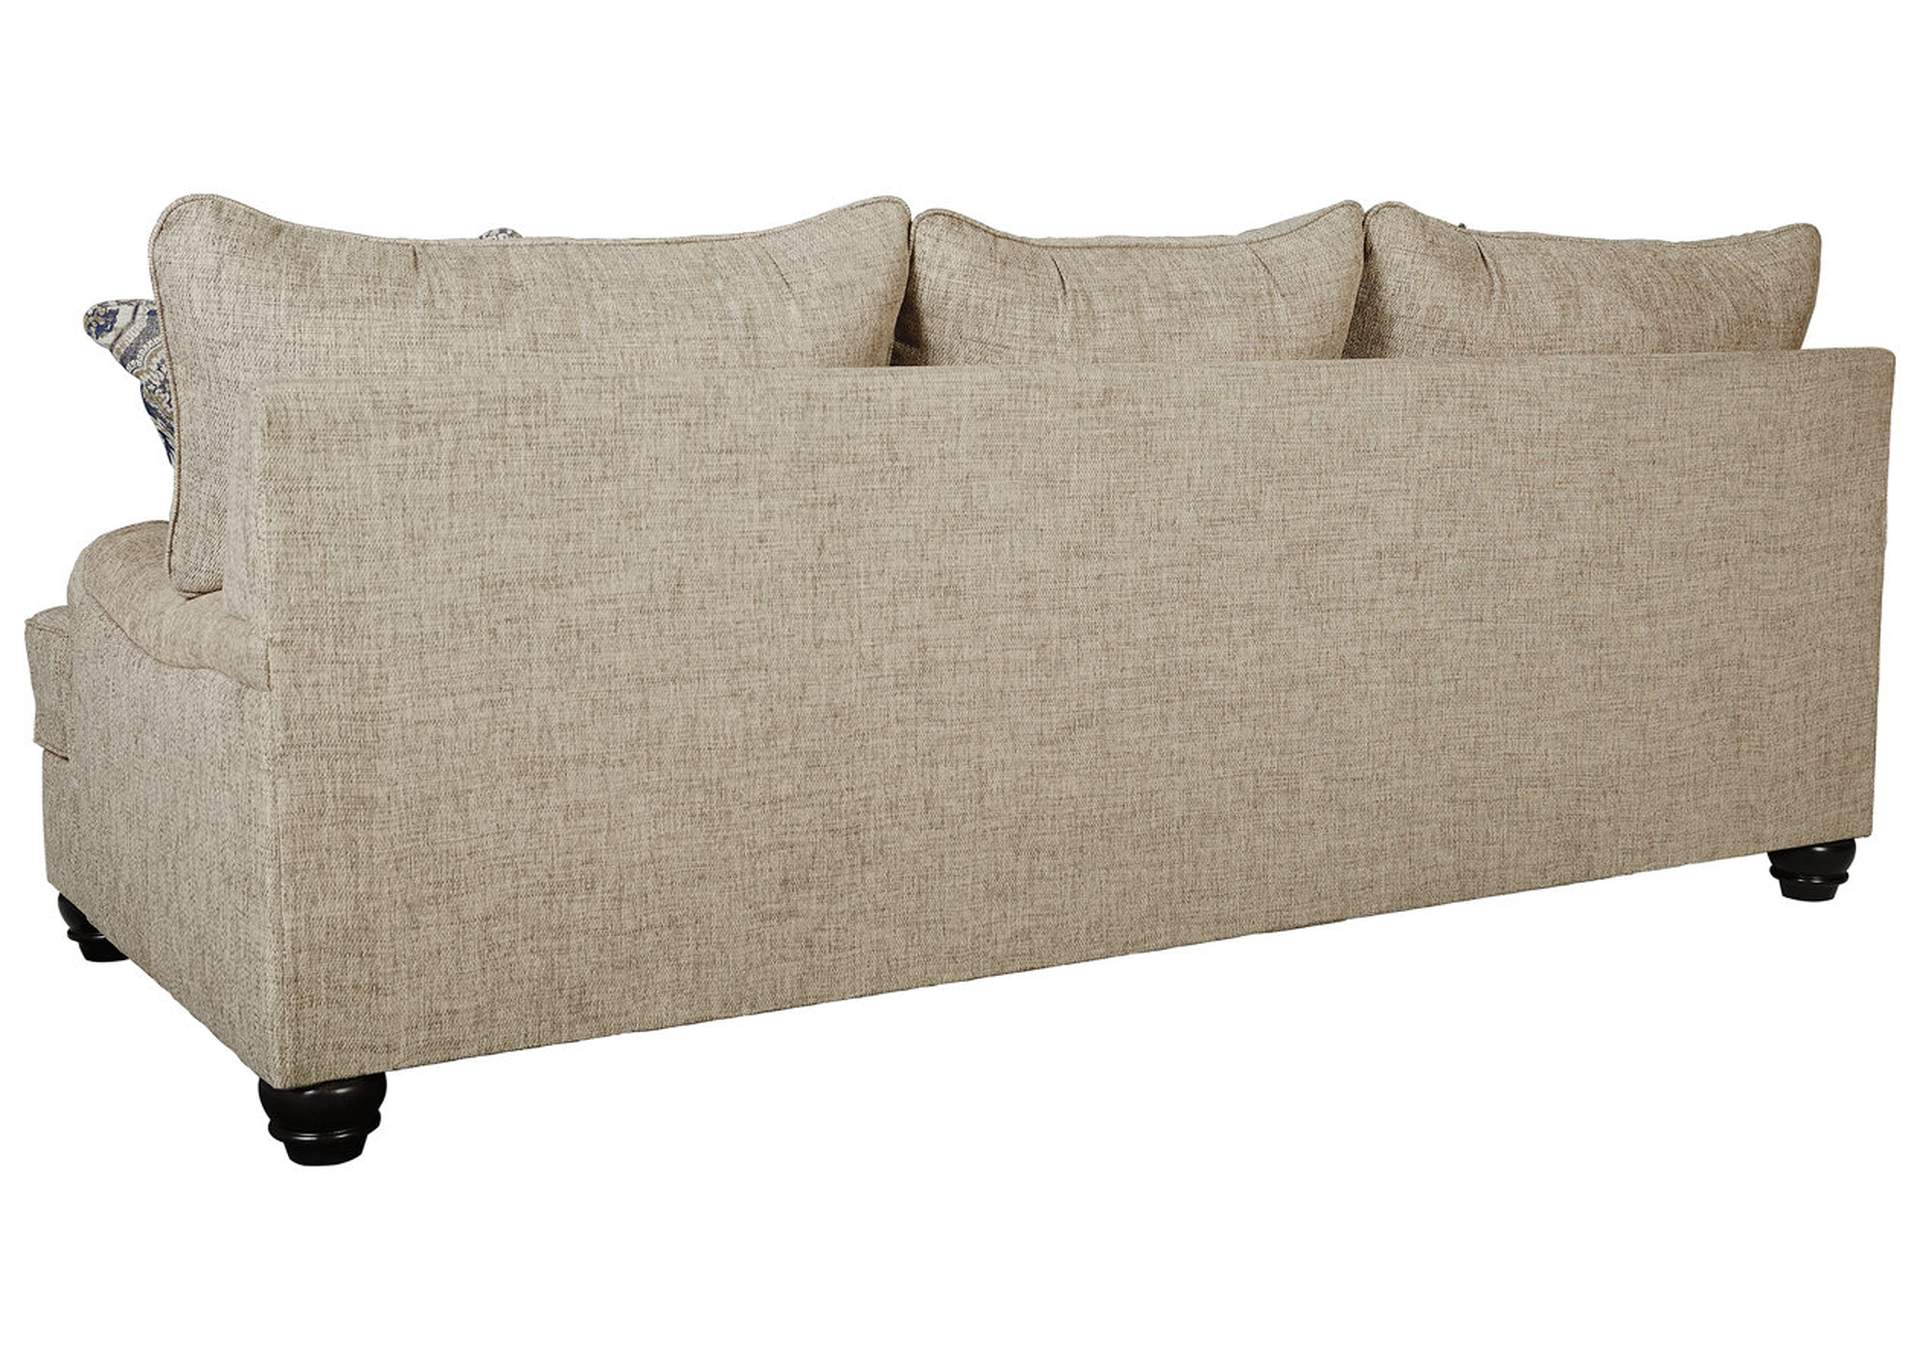 Reardon Gray Sofa,Signature Design By Ashley